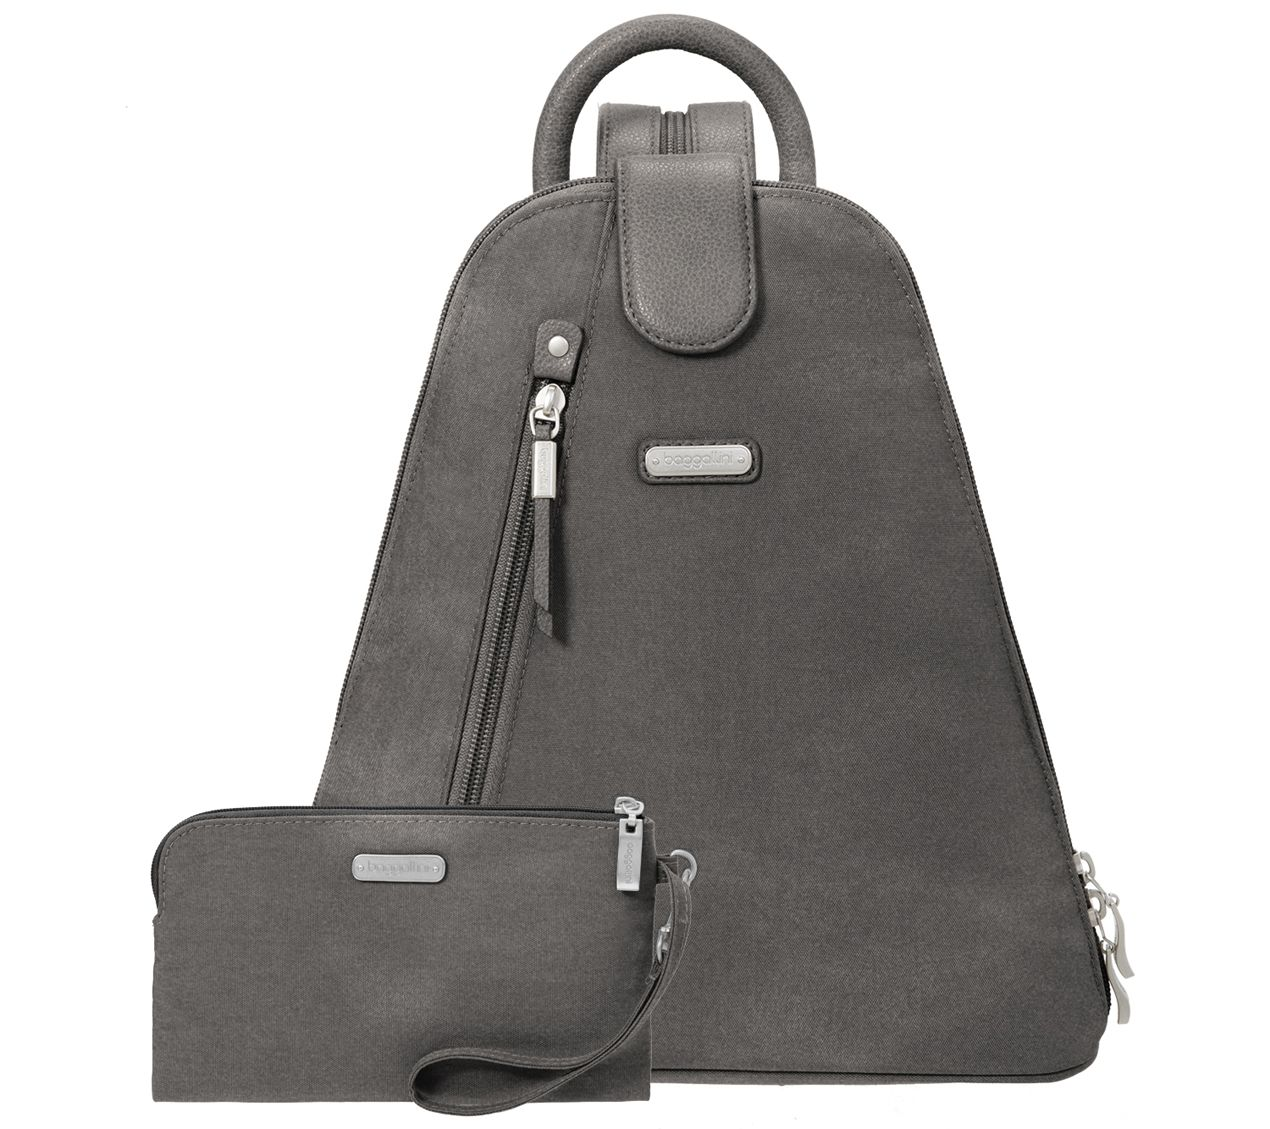 541f9ef62 baggallini Metro Backpack with RFID Phone Wrist let - Page 1 — QVC.com